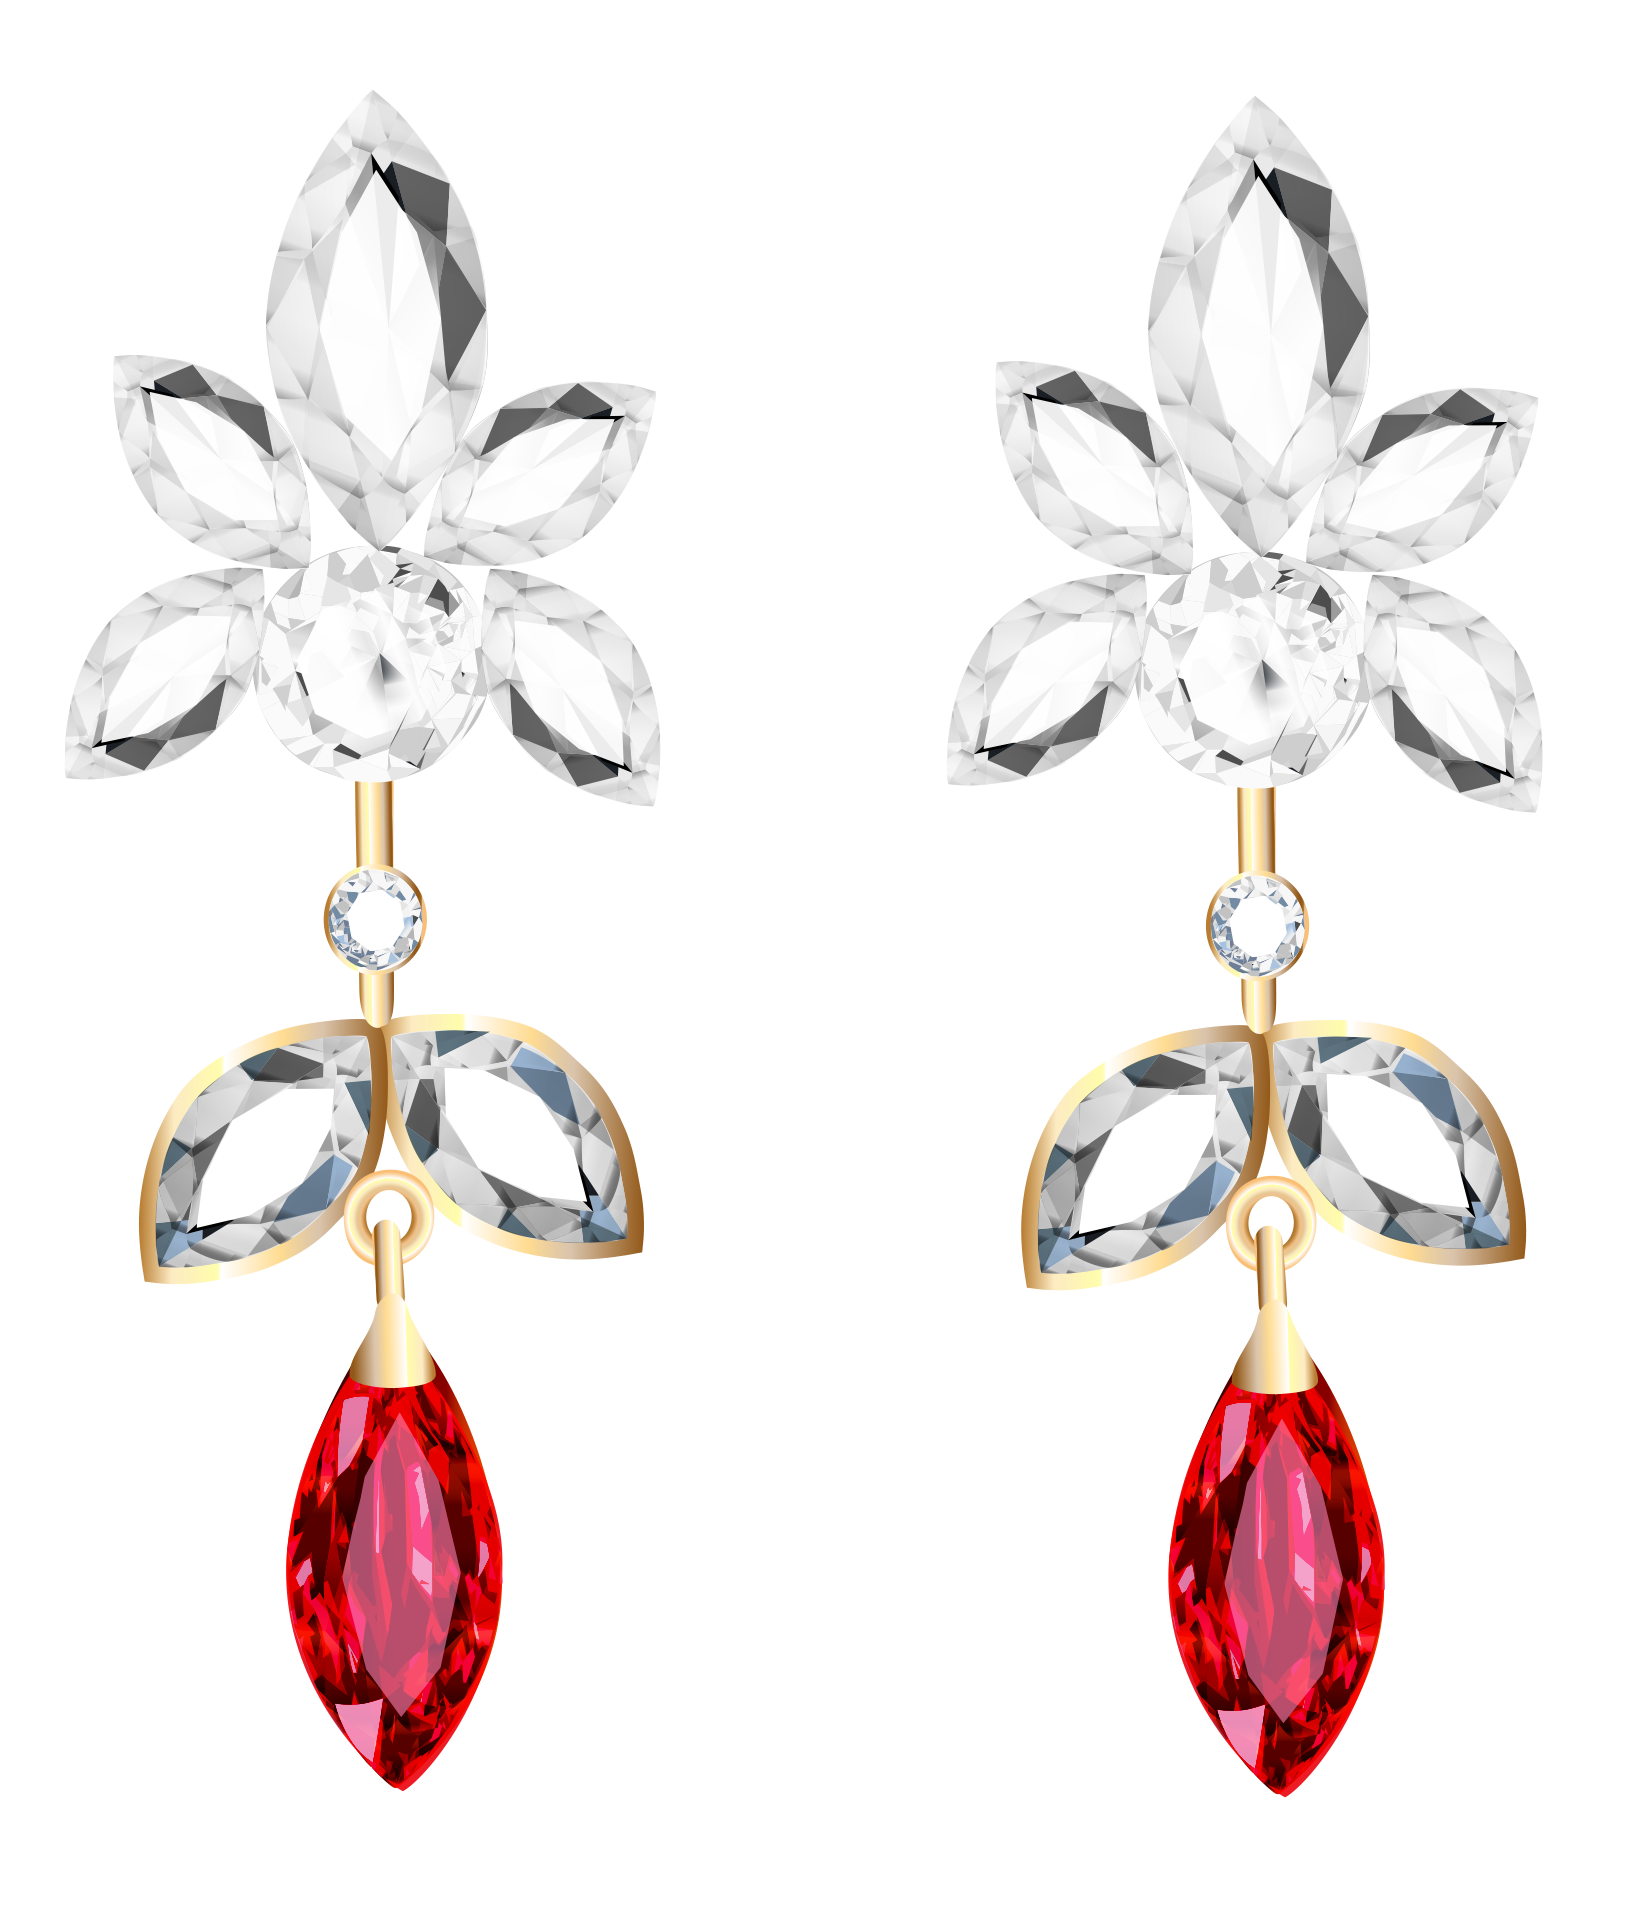 Earrings clipart images jpg free stock Transparent Diamond and Ruby Earrings PNG Clipart | Gallery ... jpg free stock